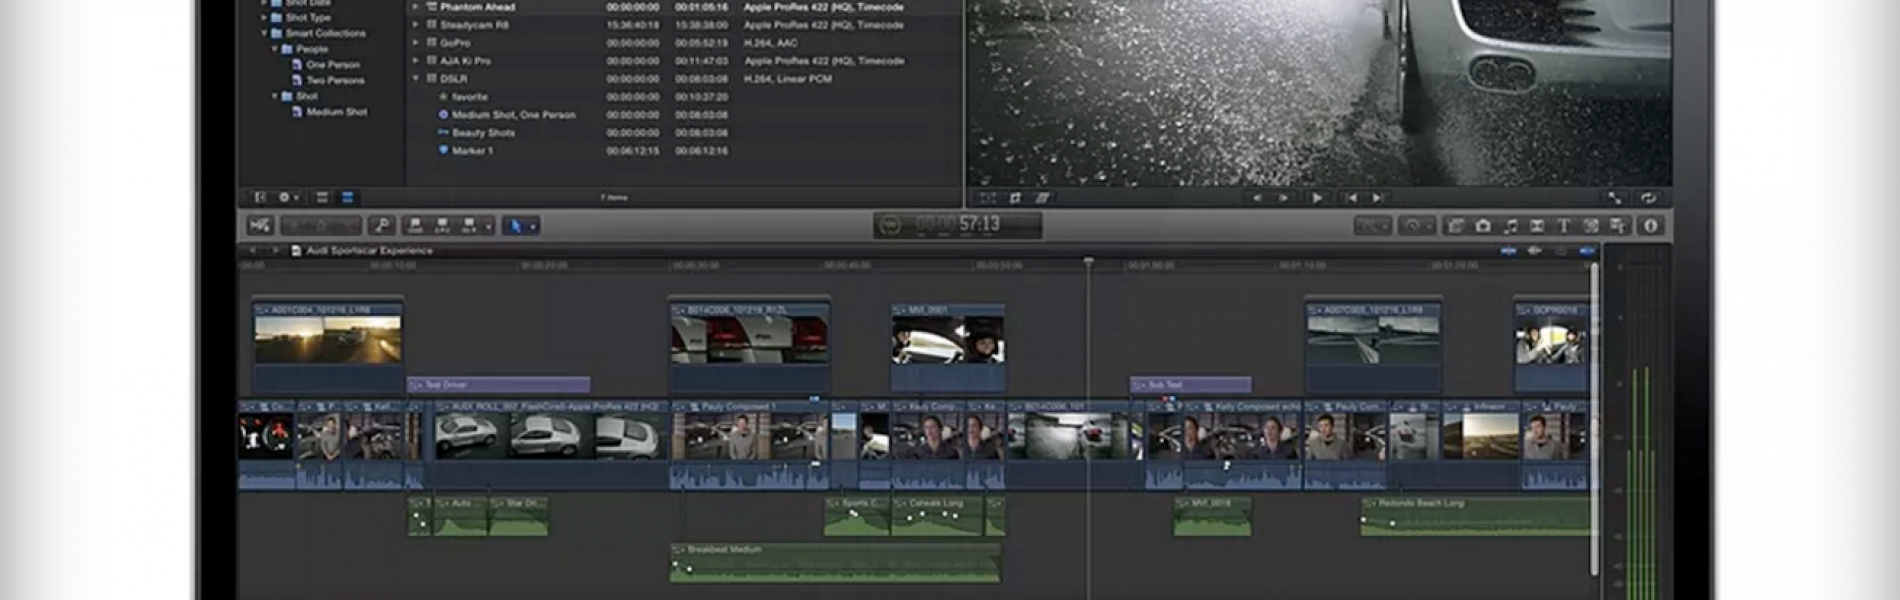 Even Apple doesn't want to use Final Cut Pro X or Logic Pro X, Digs their Professional Grave Deeper